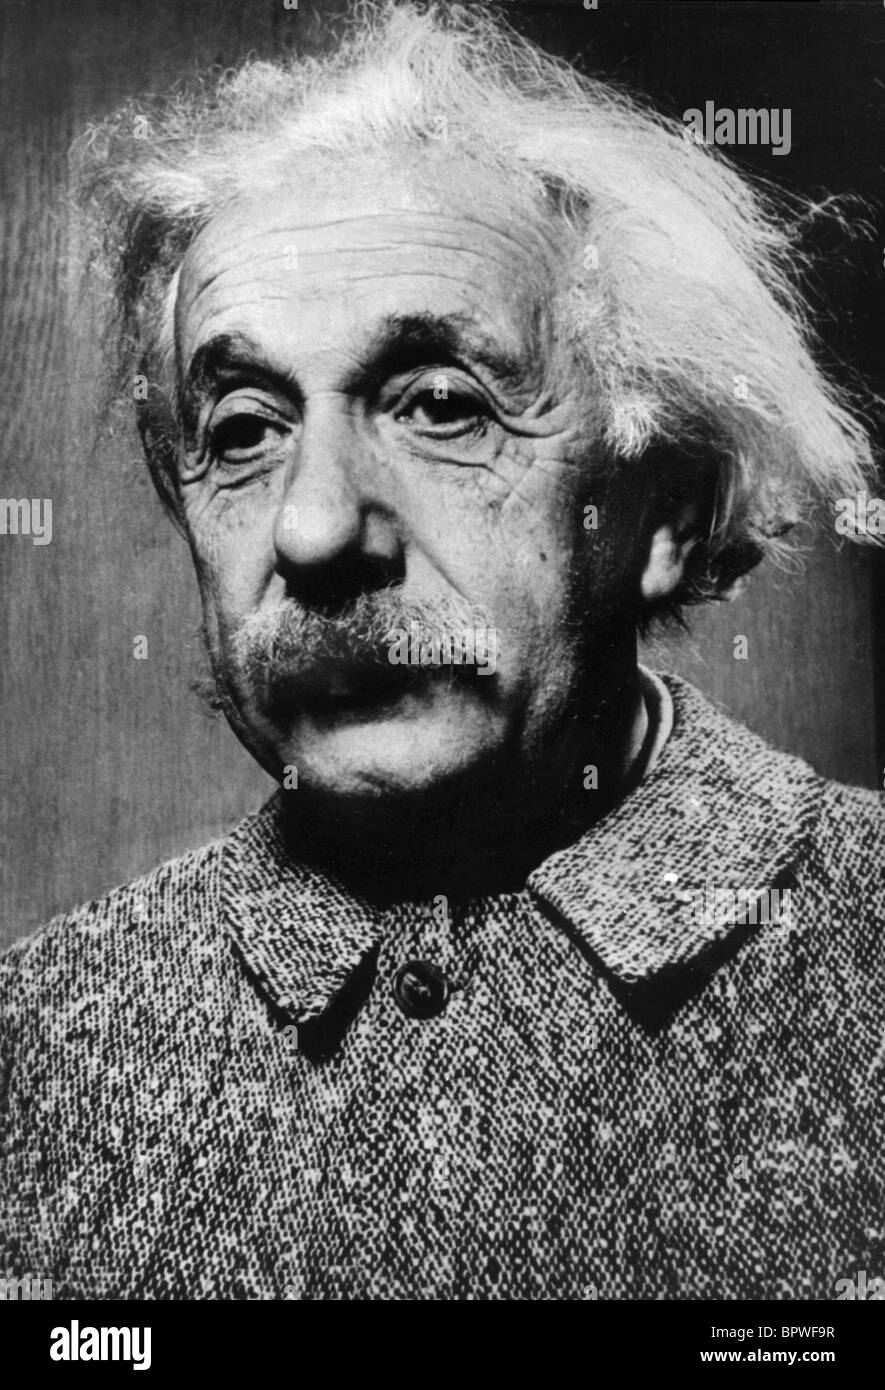 a biography of albert einstein an important american scientist Newton's stature among scientists remains at the very top rank, as demonstrated by a 2005 survey of scientists in britain's royal society asking who had the greater effect on the history of science, newton was deemed much more influential than albert einstein.